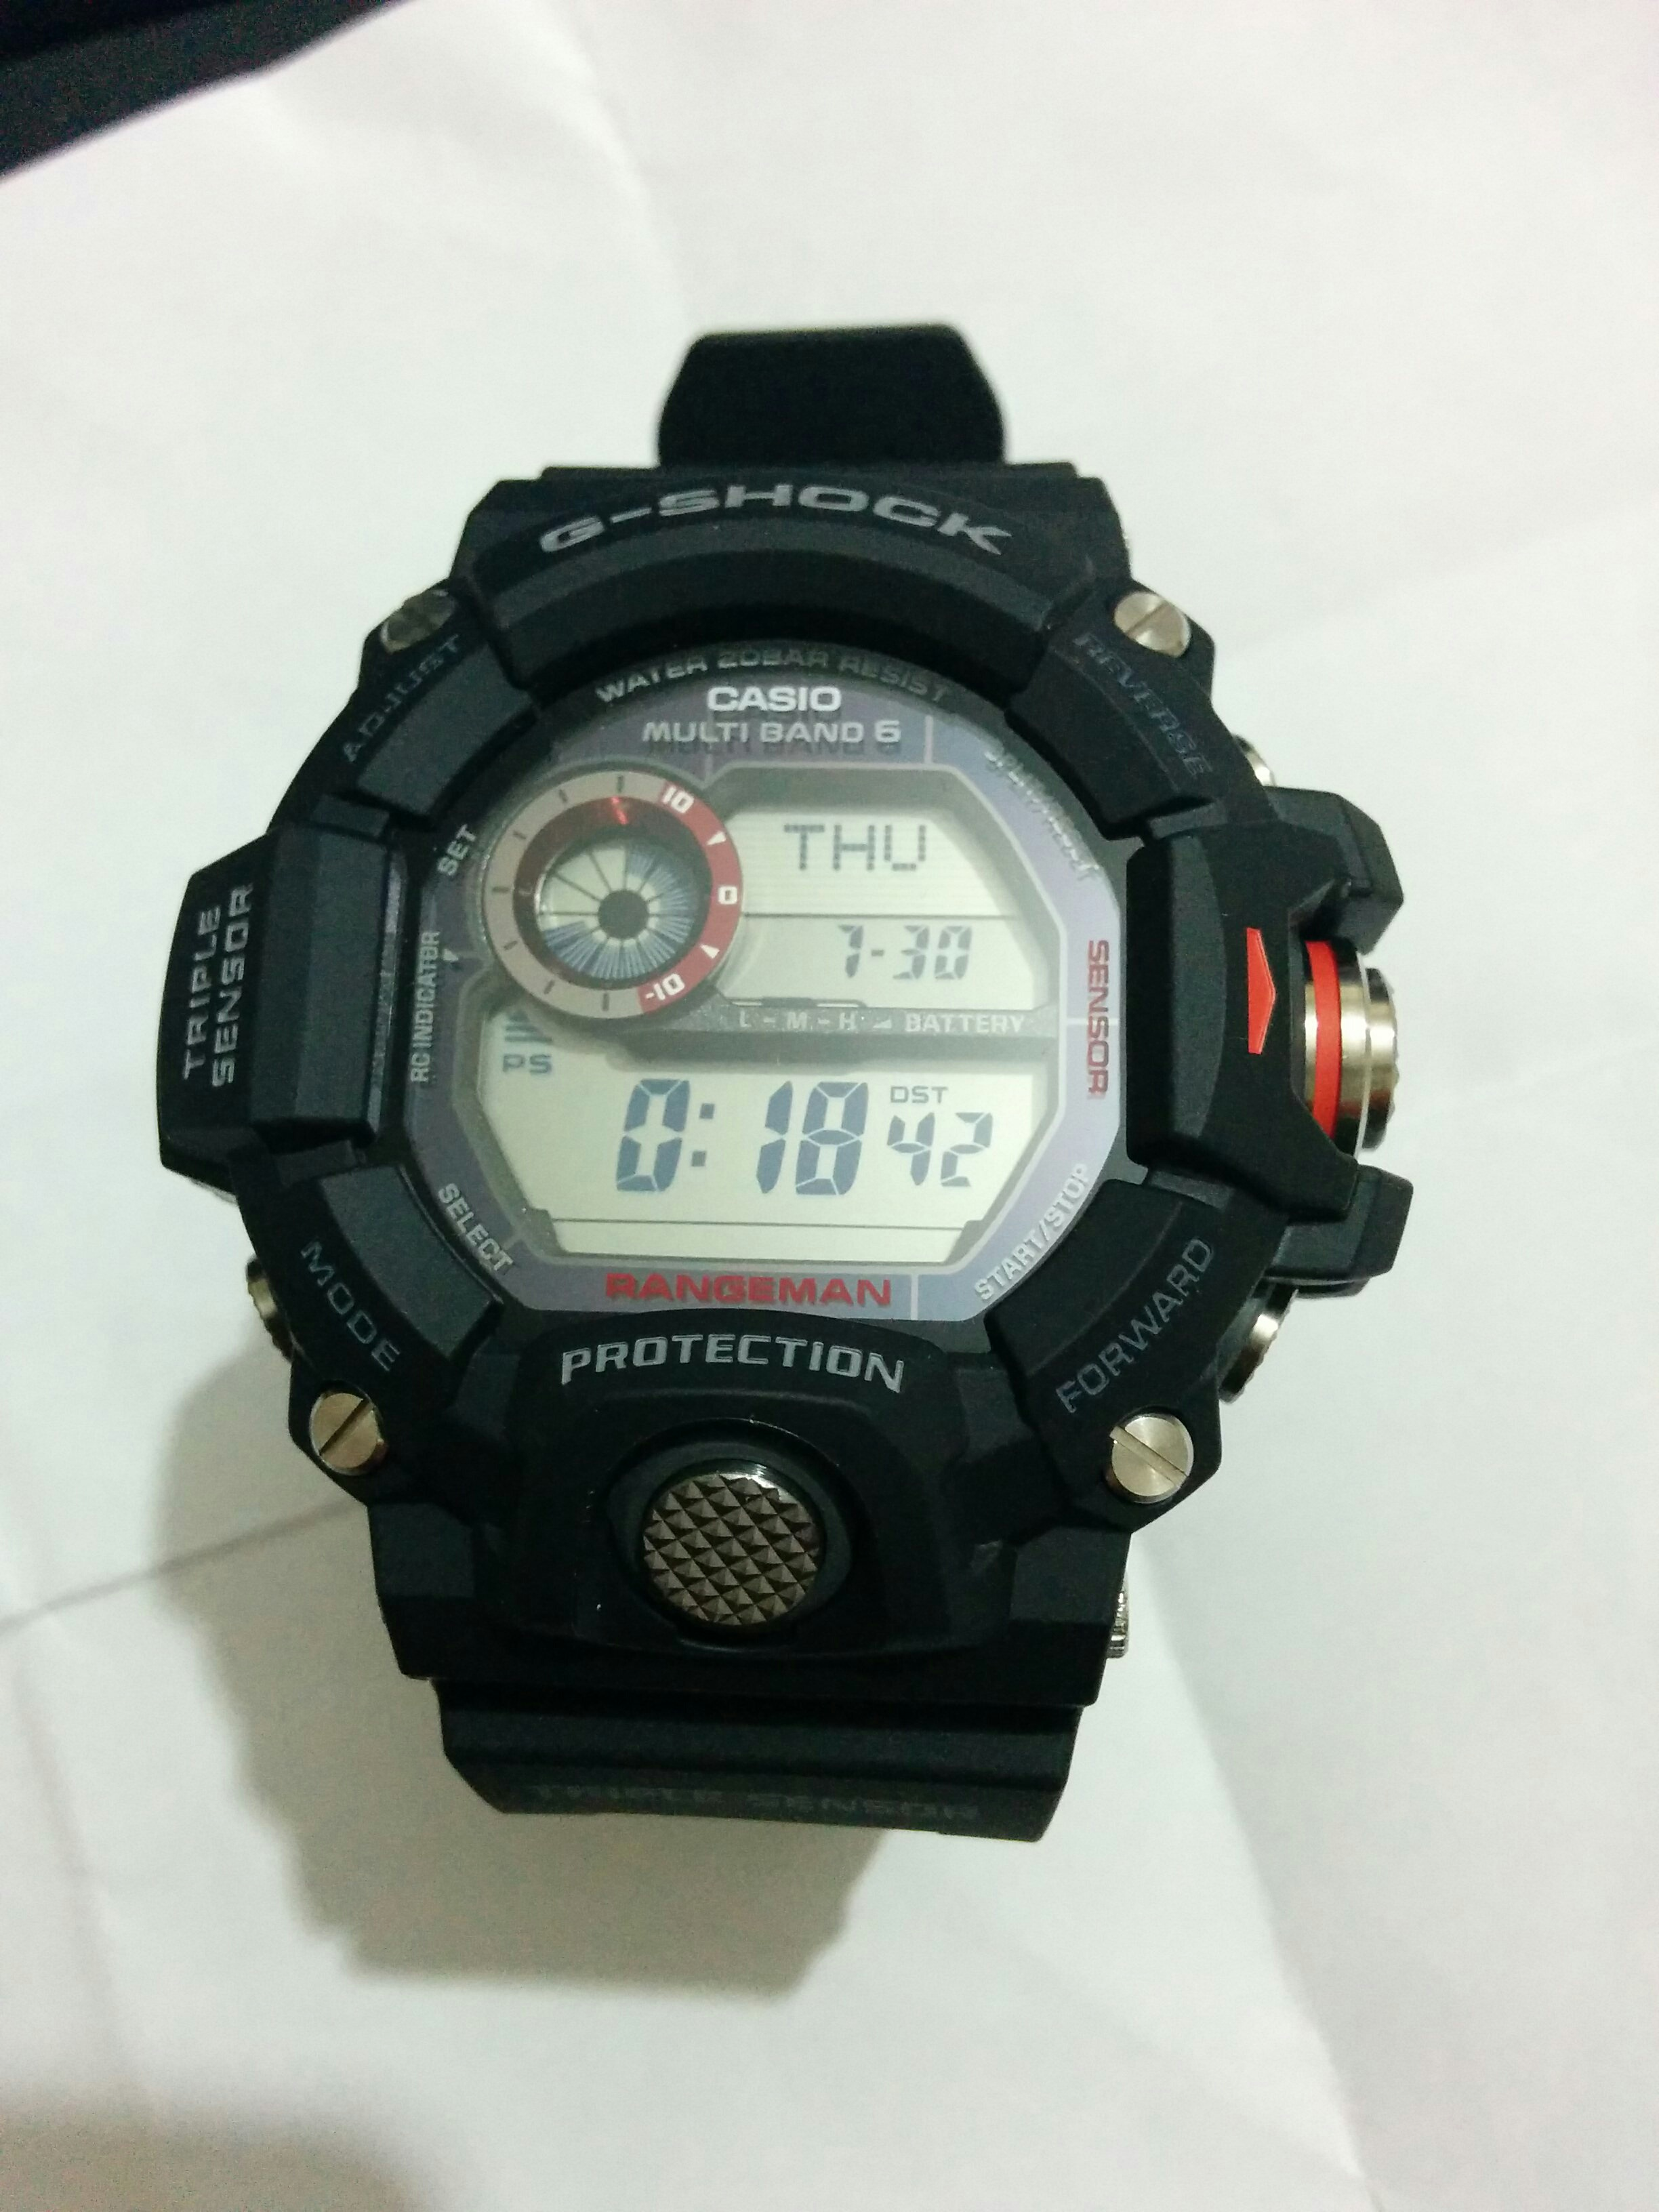 Gents Casio G Shock Rangeman Alarm Chronograph Watch Gw 9400 1er Gshock Original 9400bj 1jf I Really Love This So Thought Would Take Some Time To Review It And Mention Additional Features That Potential Buyers Might Find Useful Including